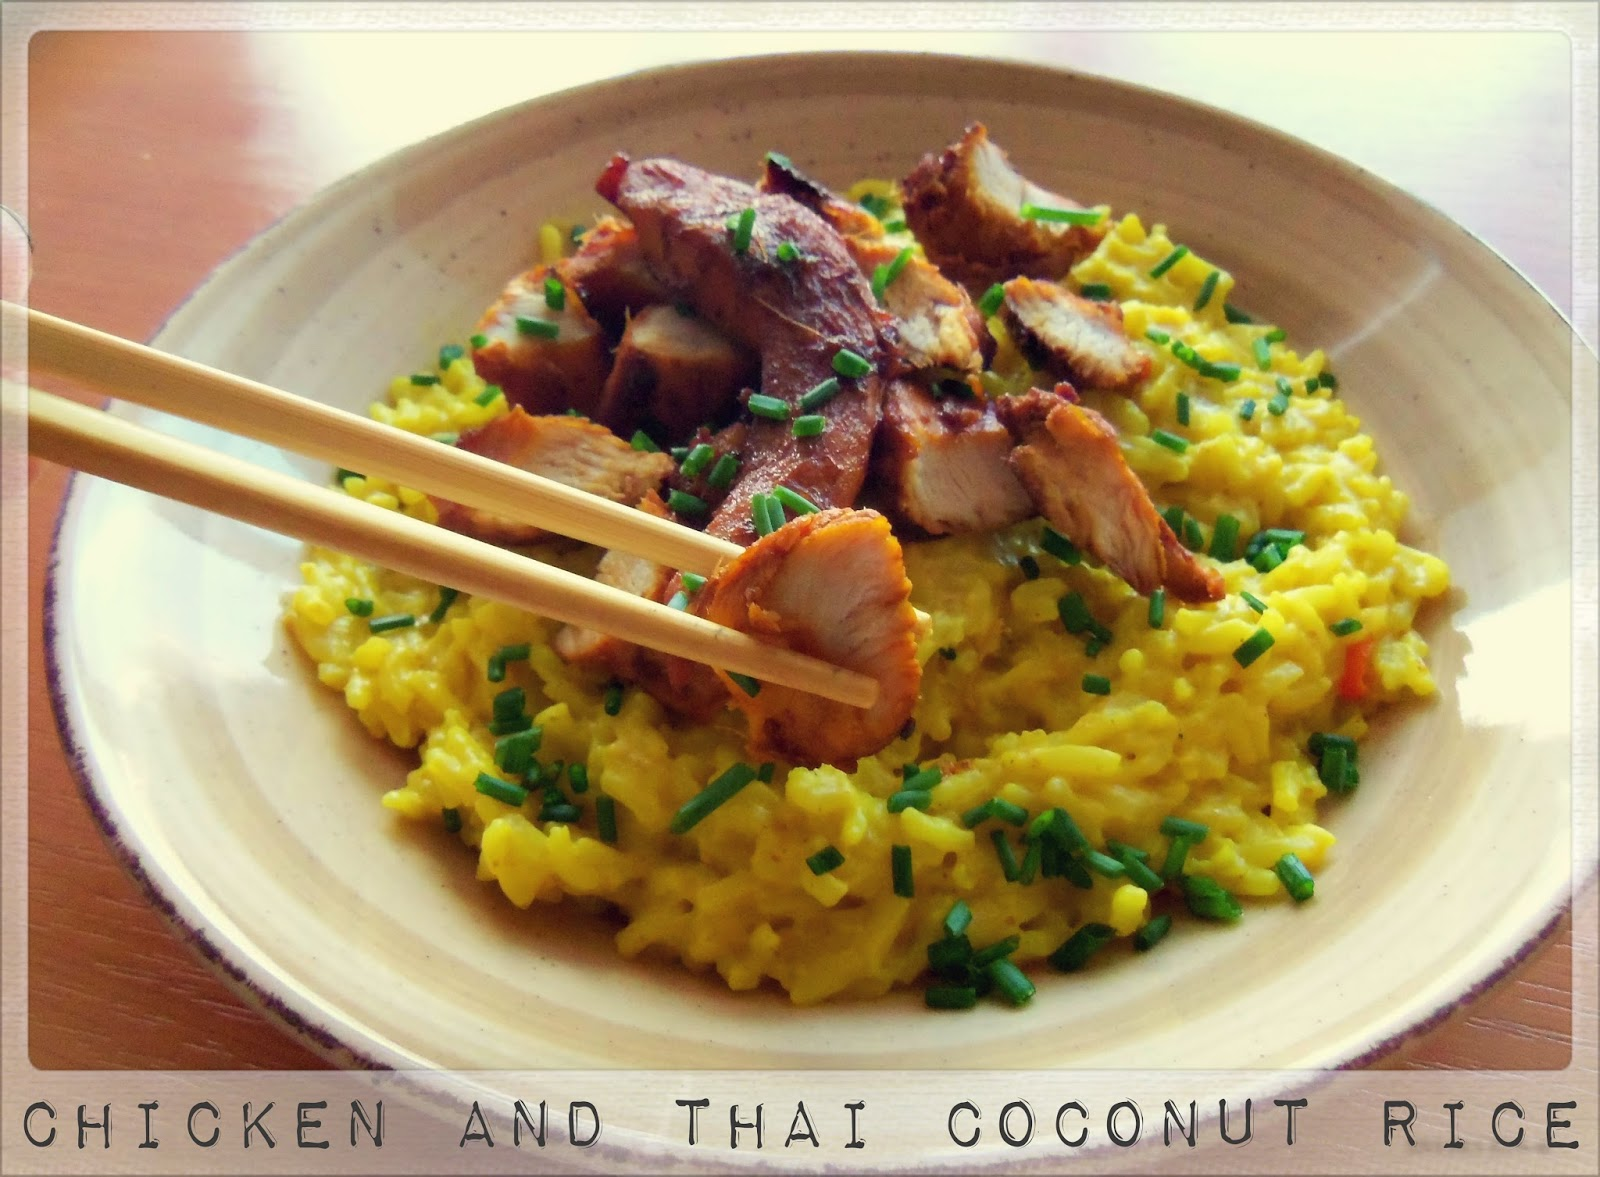 Caramelized Chicken With Coconut Rice